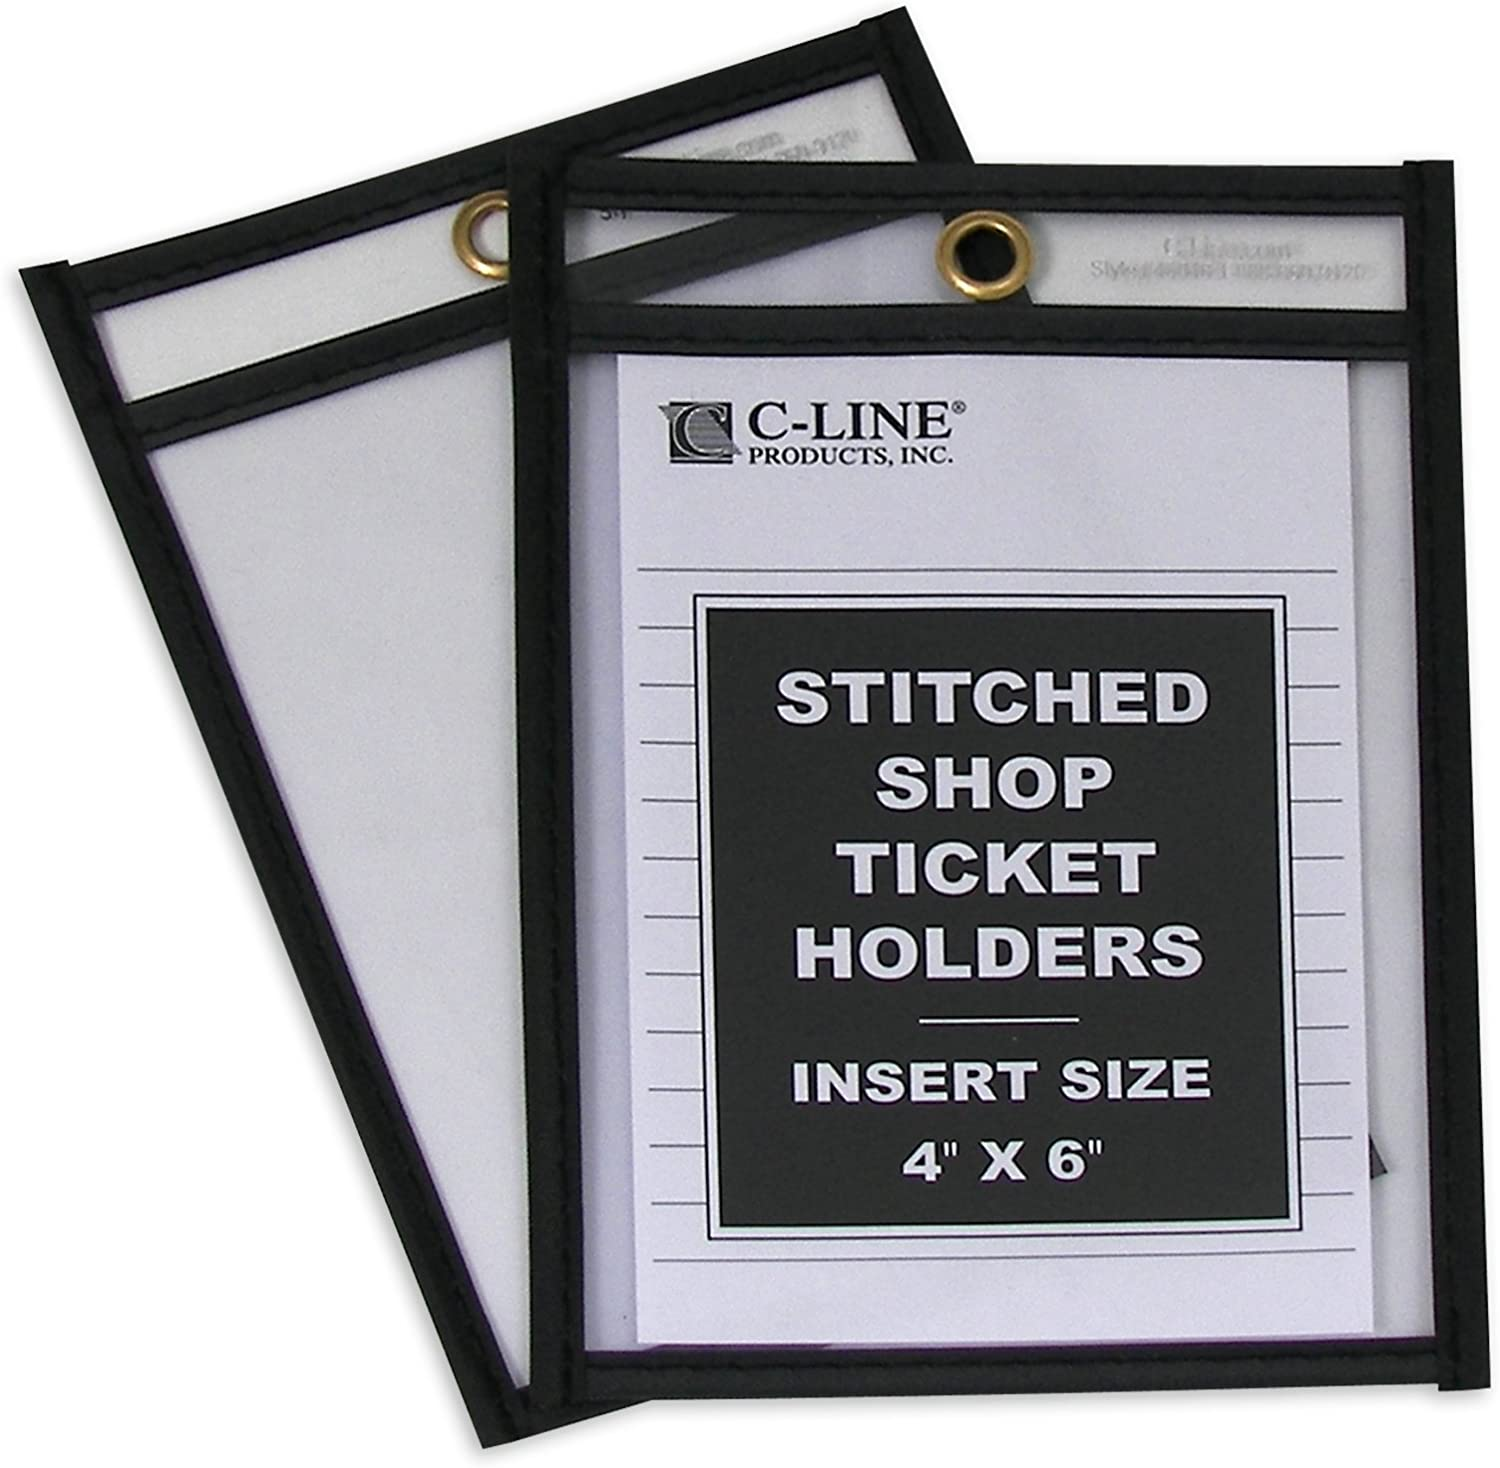 C-Line Stitched Shop Ticket Holders, Both Sides Clear, 4 x 6 Inches, 25 per Box (46046)